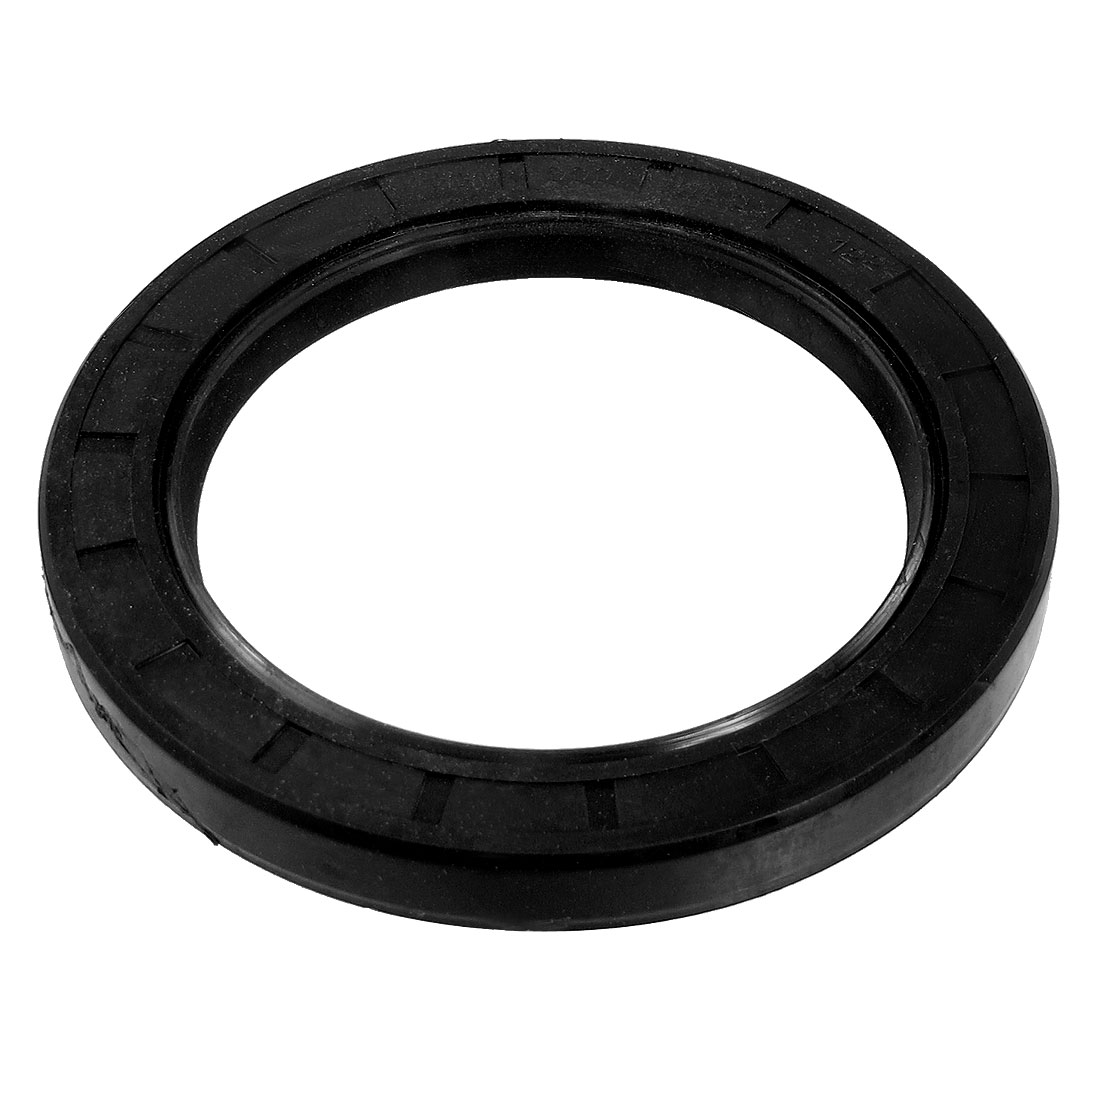 Black Nitrile Rubber Dual Lips Oil Shaft Seal TC 80mm x 110mm x 12mm